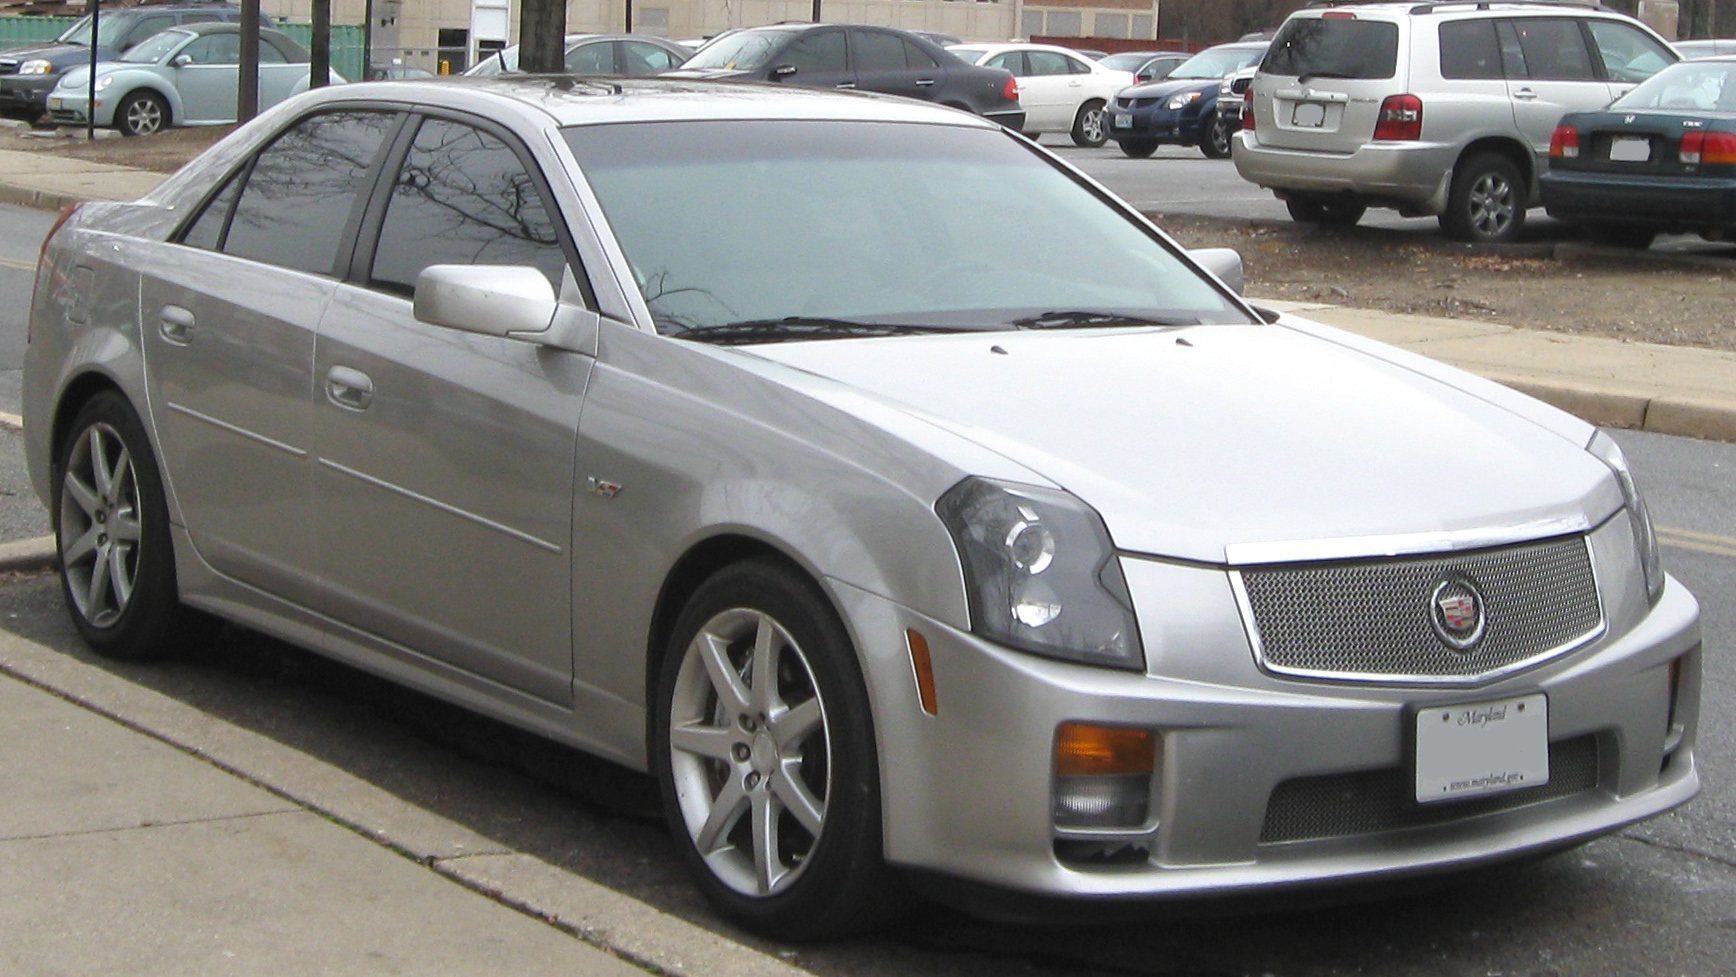 Cadillac Cts-V Wagon For Sale >> Cadillac CTS-V - Wikipedia